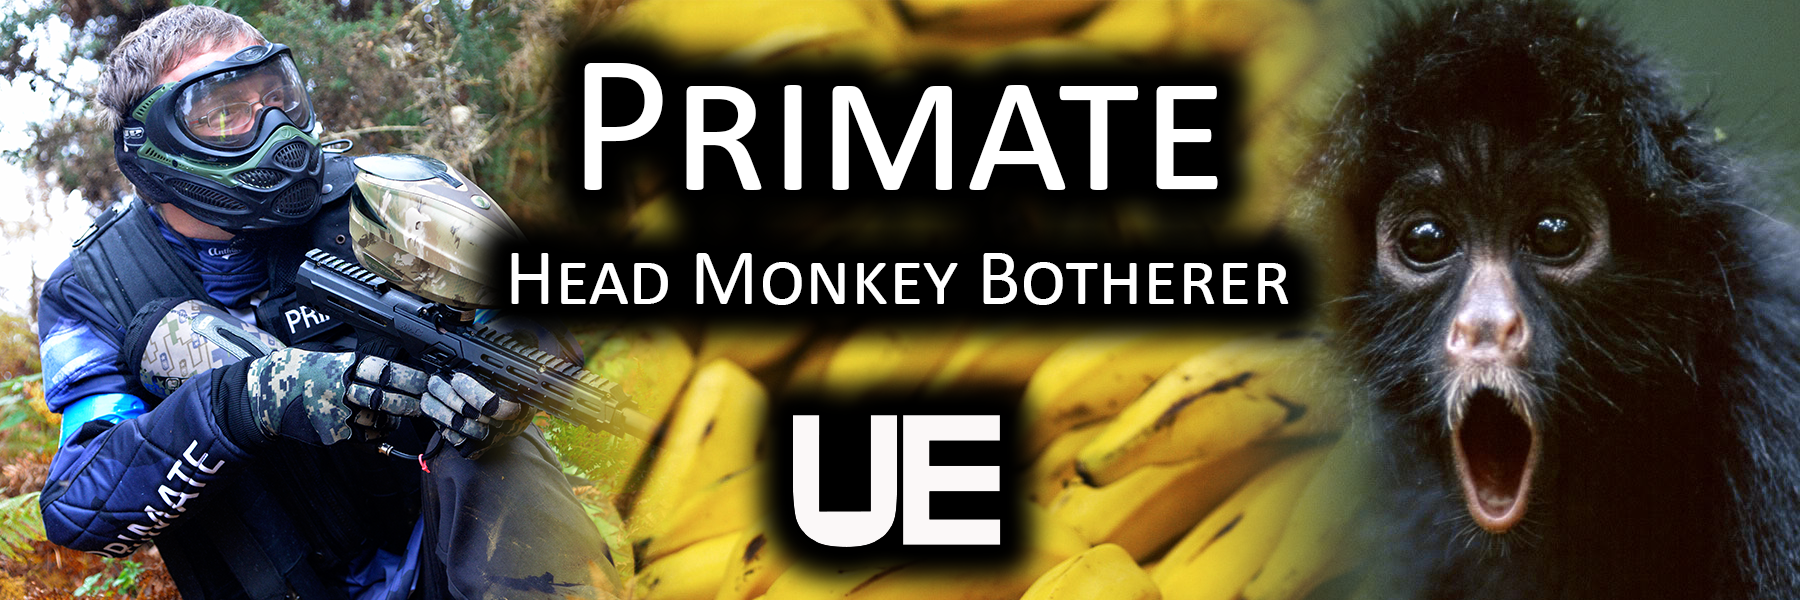 Primate - Head Monkey Botherer